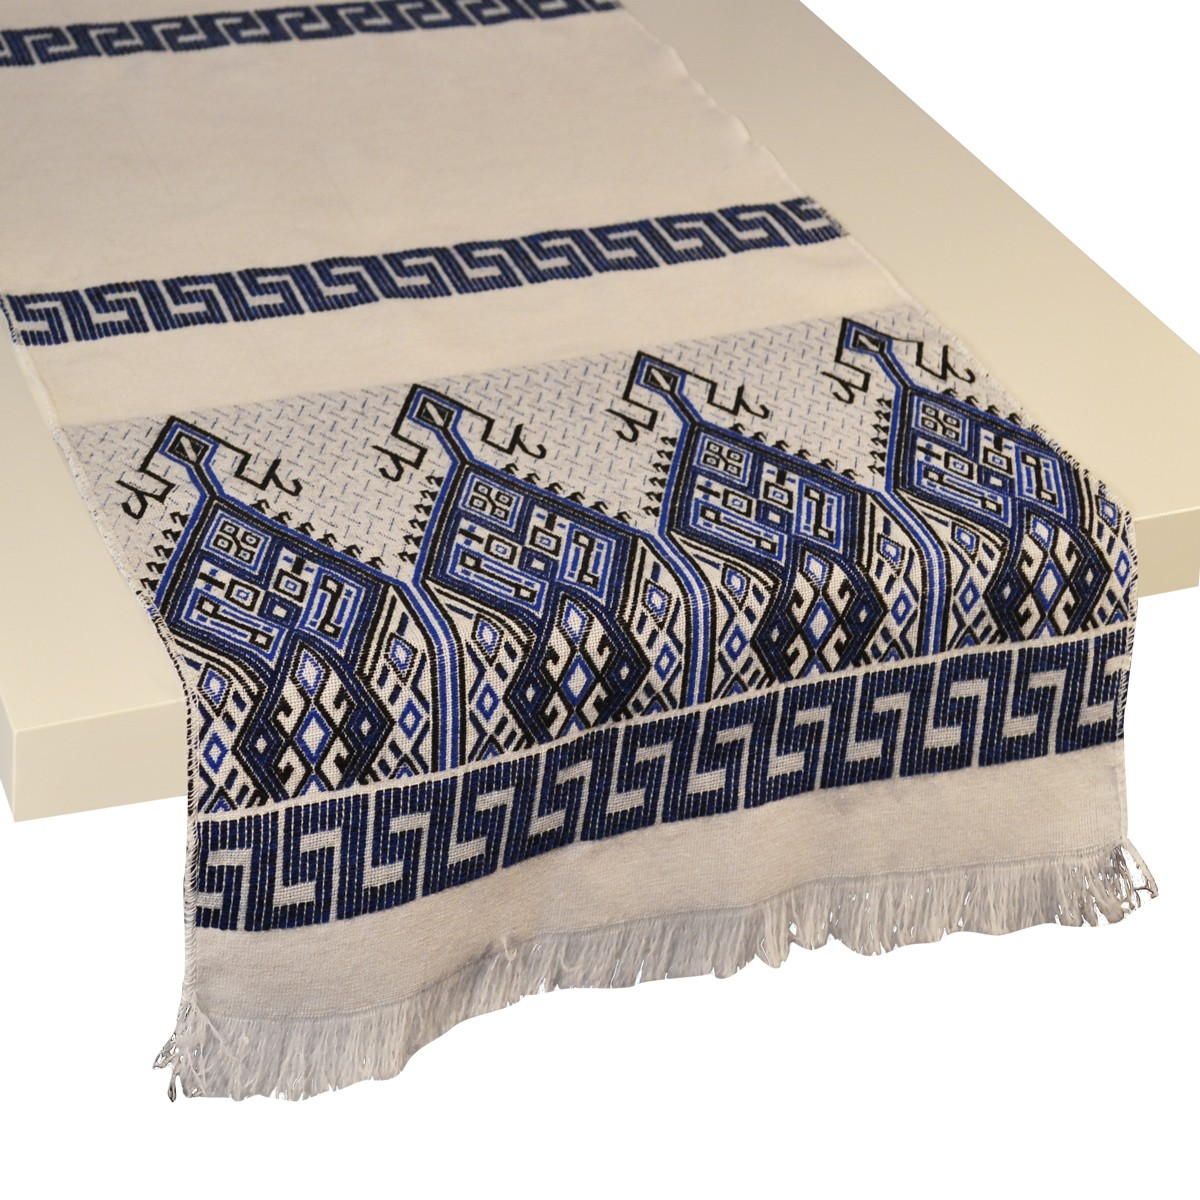 Praesos Jacquard Table Runner, Blue / White, S